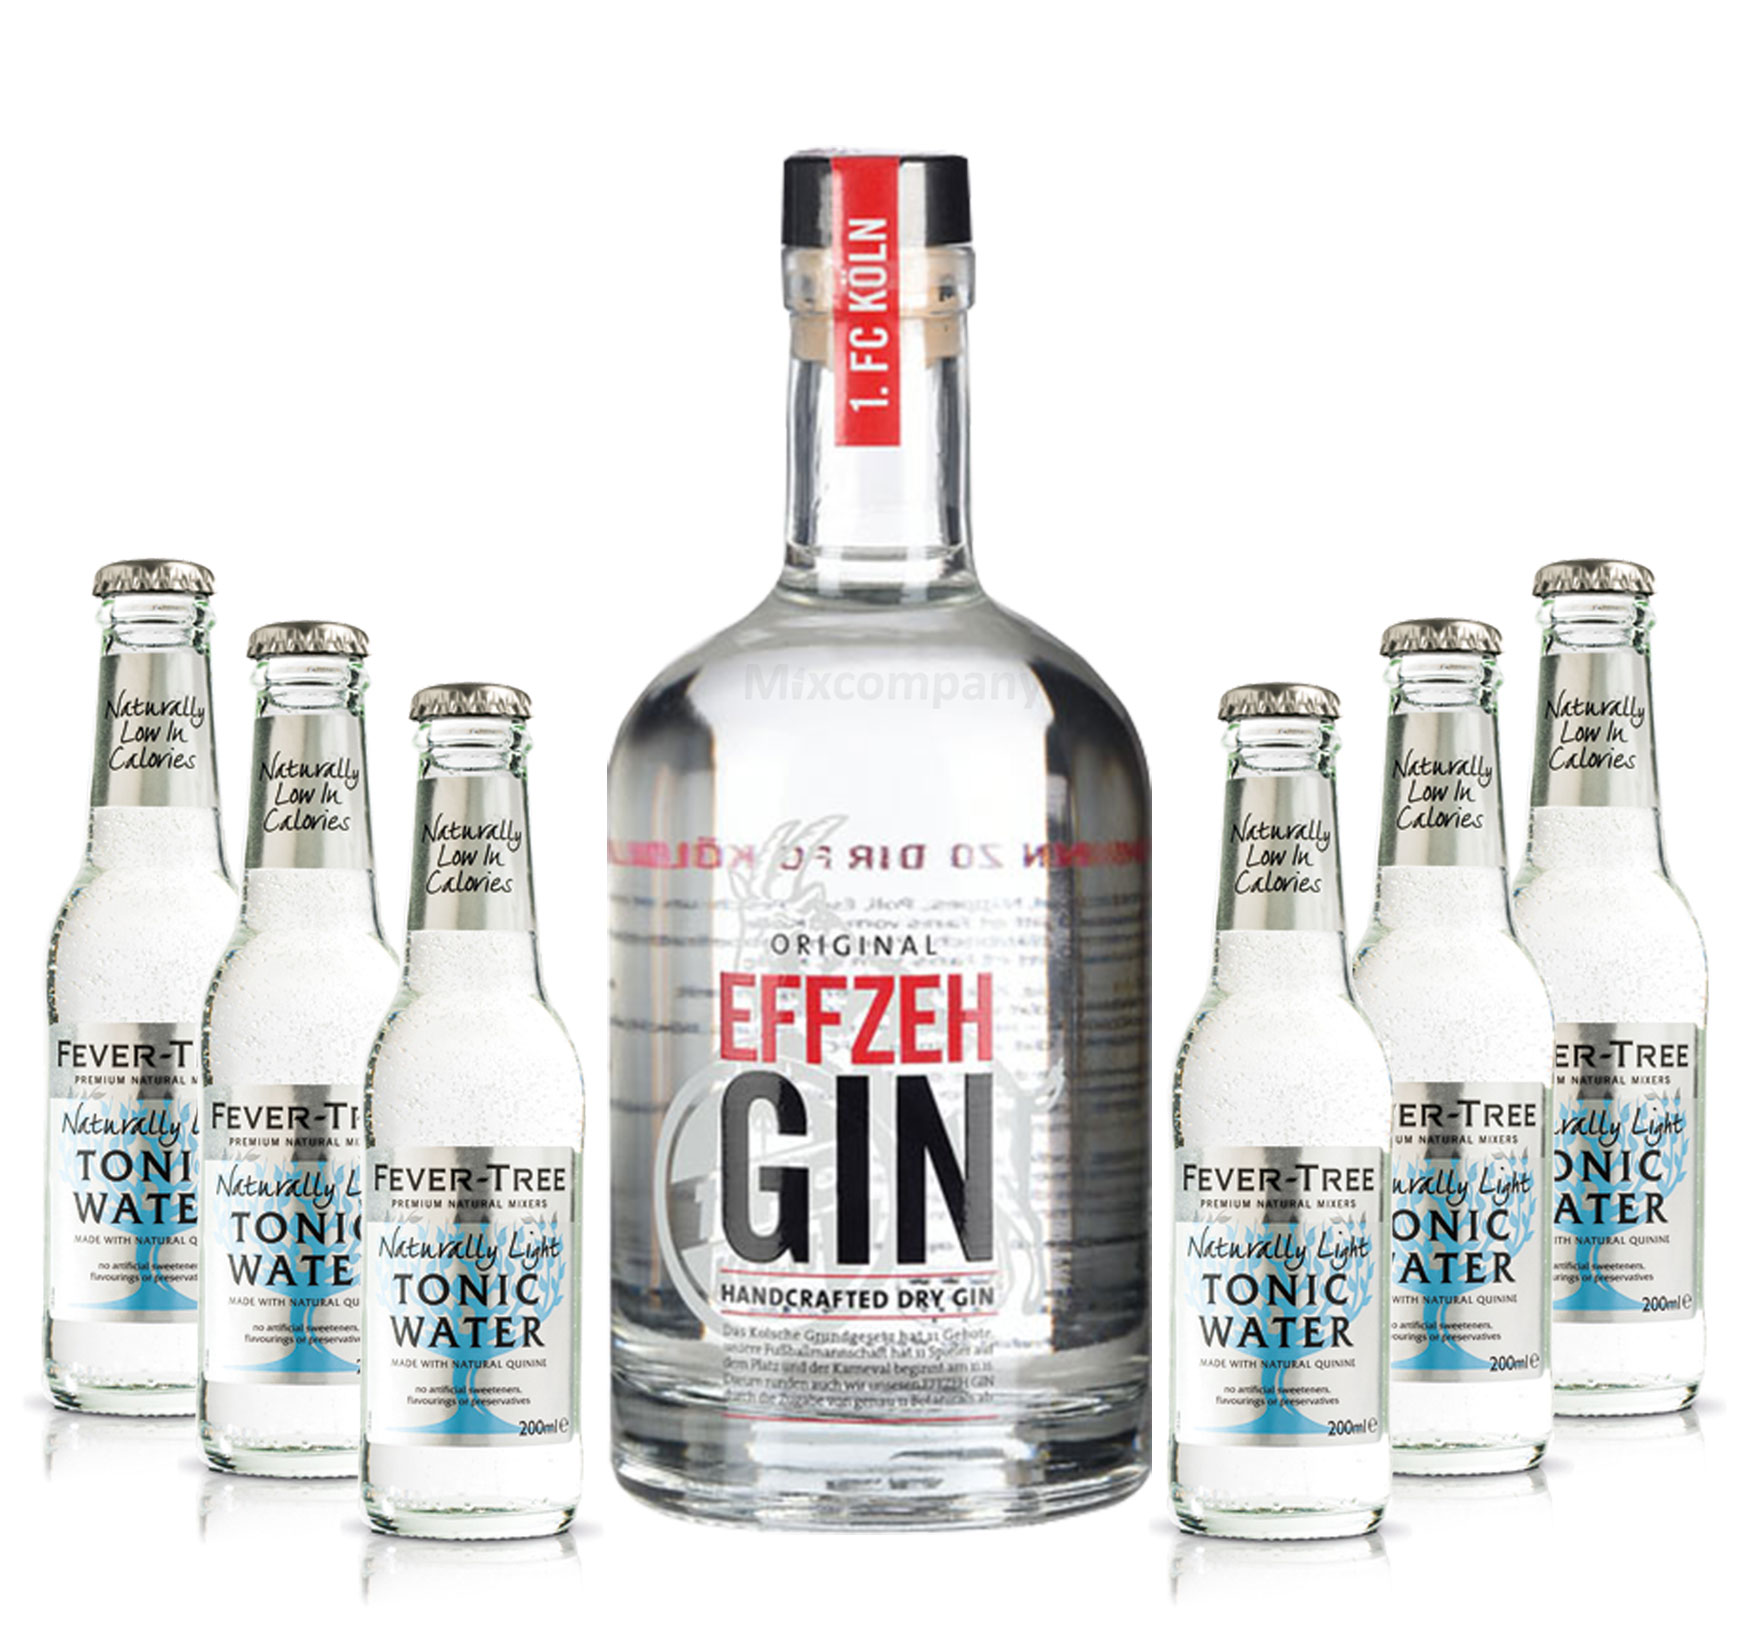 Effzeh Handcrafted Dry Gin 0,5l 500ml (42% Vol) + 6xFEVER-TREE Naturally Light Indian Tonic Water 0,2l MEHRWEG inkl. Pfand - [Enthält Sulfite]